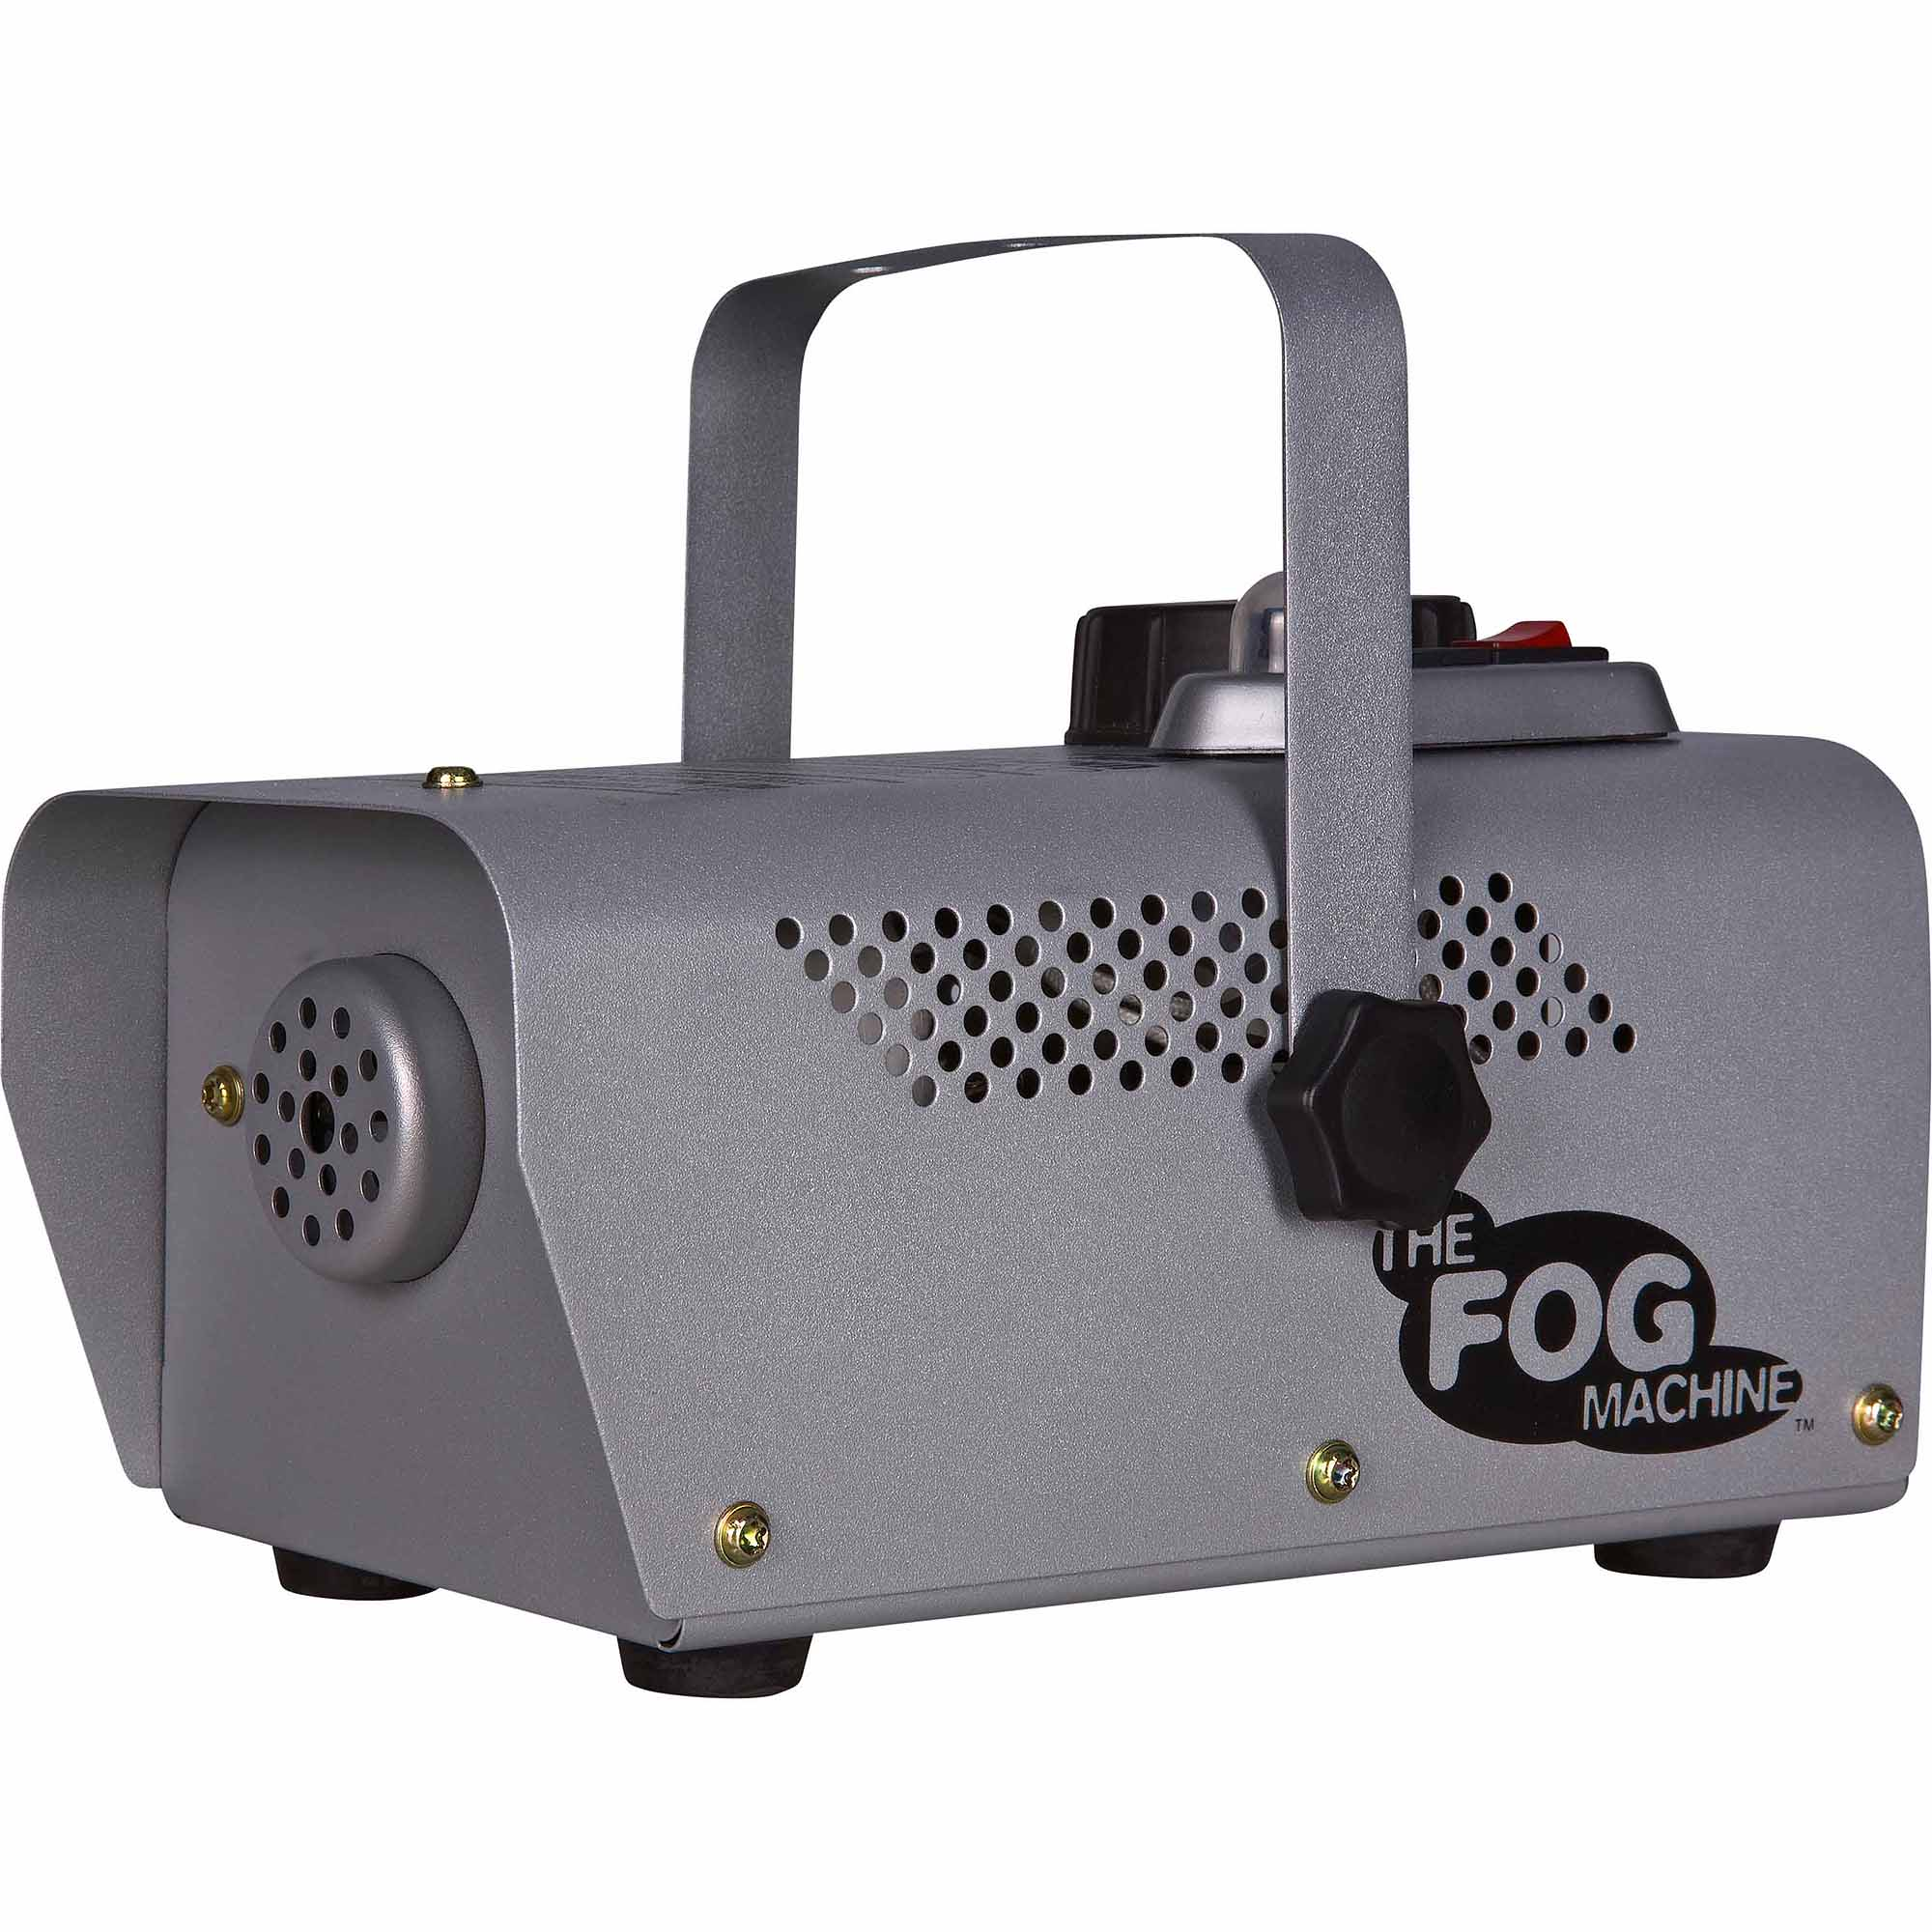 15e3e9ae 5153 48d2 b6a4 a360477a7908_1.0beda09dc2650543113b36eb3789b92d the fog machine with remote 400w by gemmy industries walmart com fog machine remote wiring diagram at cos-gaming.co